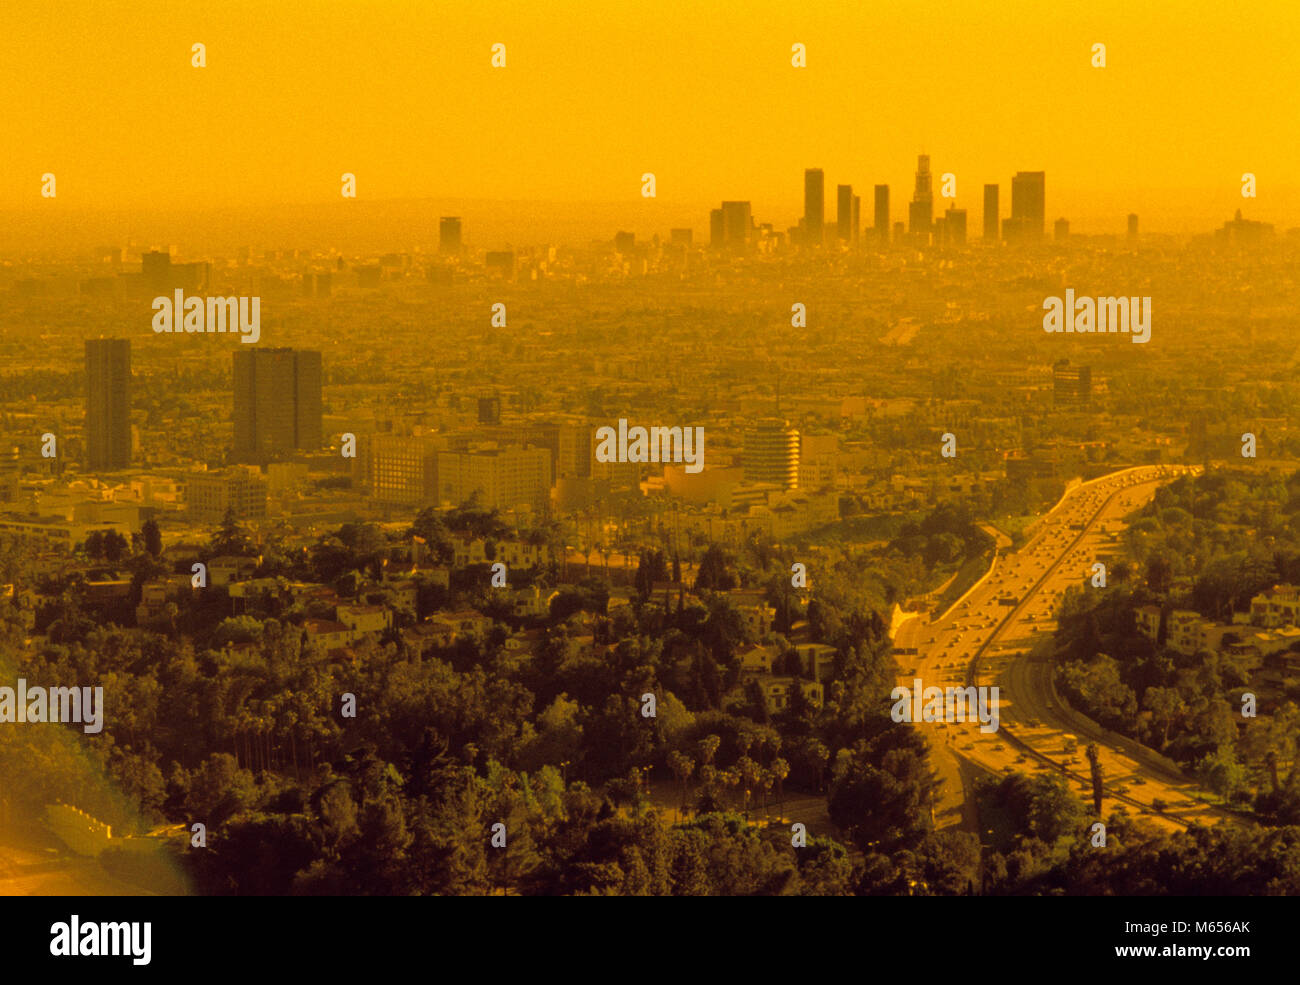 1990s AERIAL SKYLINE WITH SMOG LOS ANGELES CALIFORNIA USA - ca002716 CAM001 HARS WEST COAST FREEWAY AUTOMOBILES - Stock Image